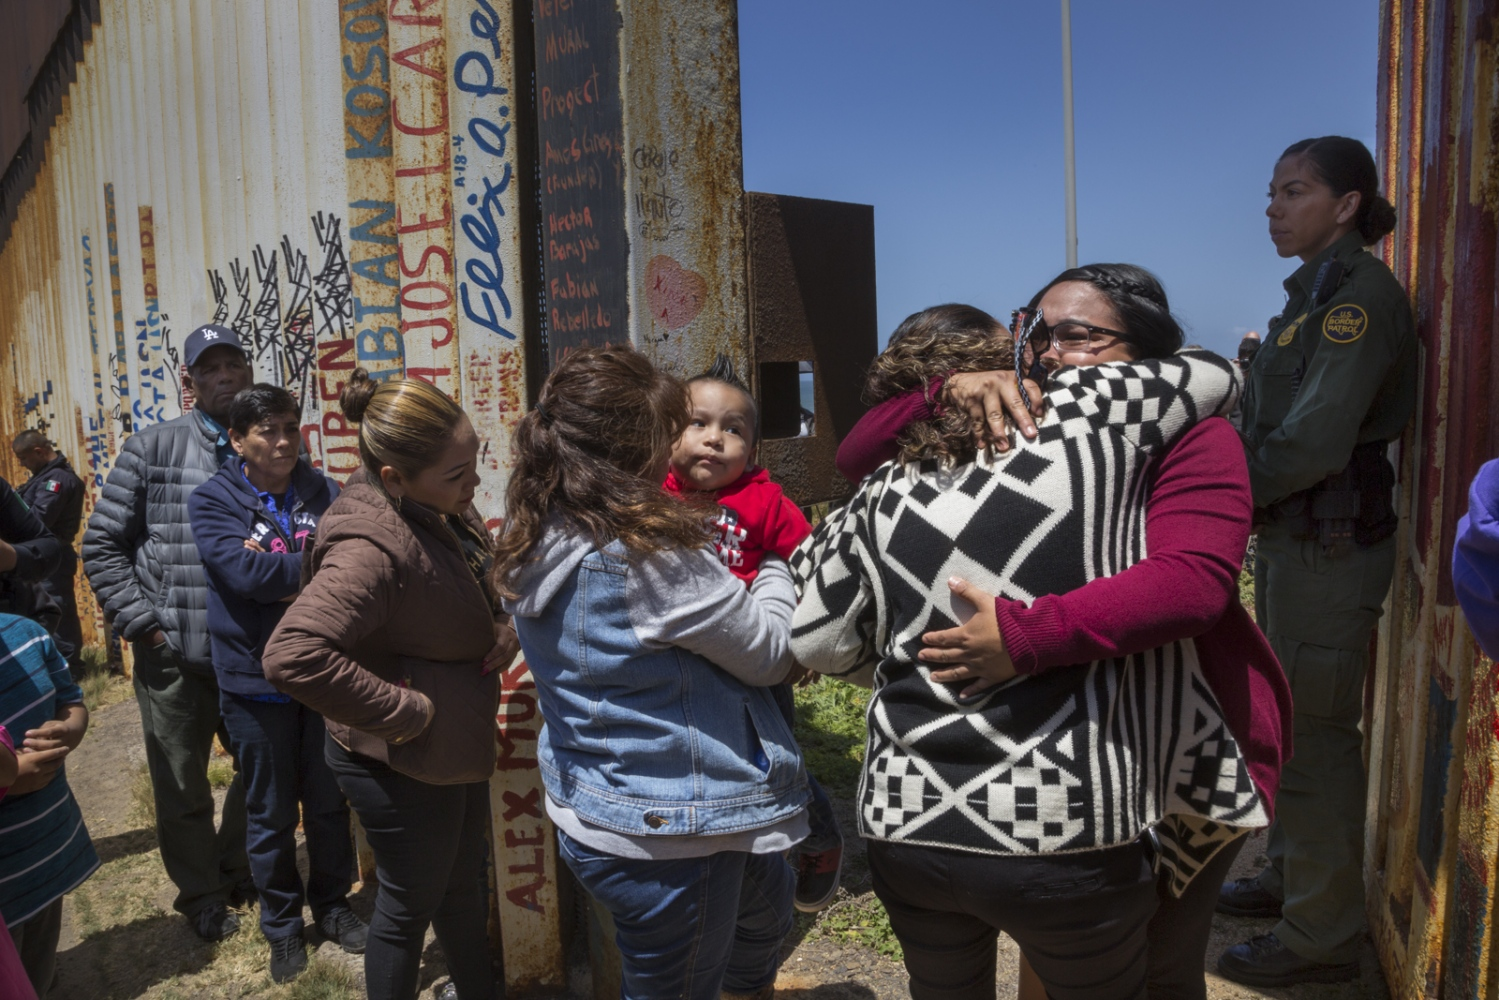 """Gabriela Esparza (in red) reunites briefly (3 minutes) with her sister Susana and her mother María del Carmen Flores during the """"Opening the Door of Hope"""" event at the border wall in Playas de Tijuana, Mexico, on April 30, 2016. On January 2018, Border Patrol announced the door will not re-open this year."""